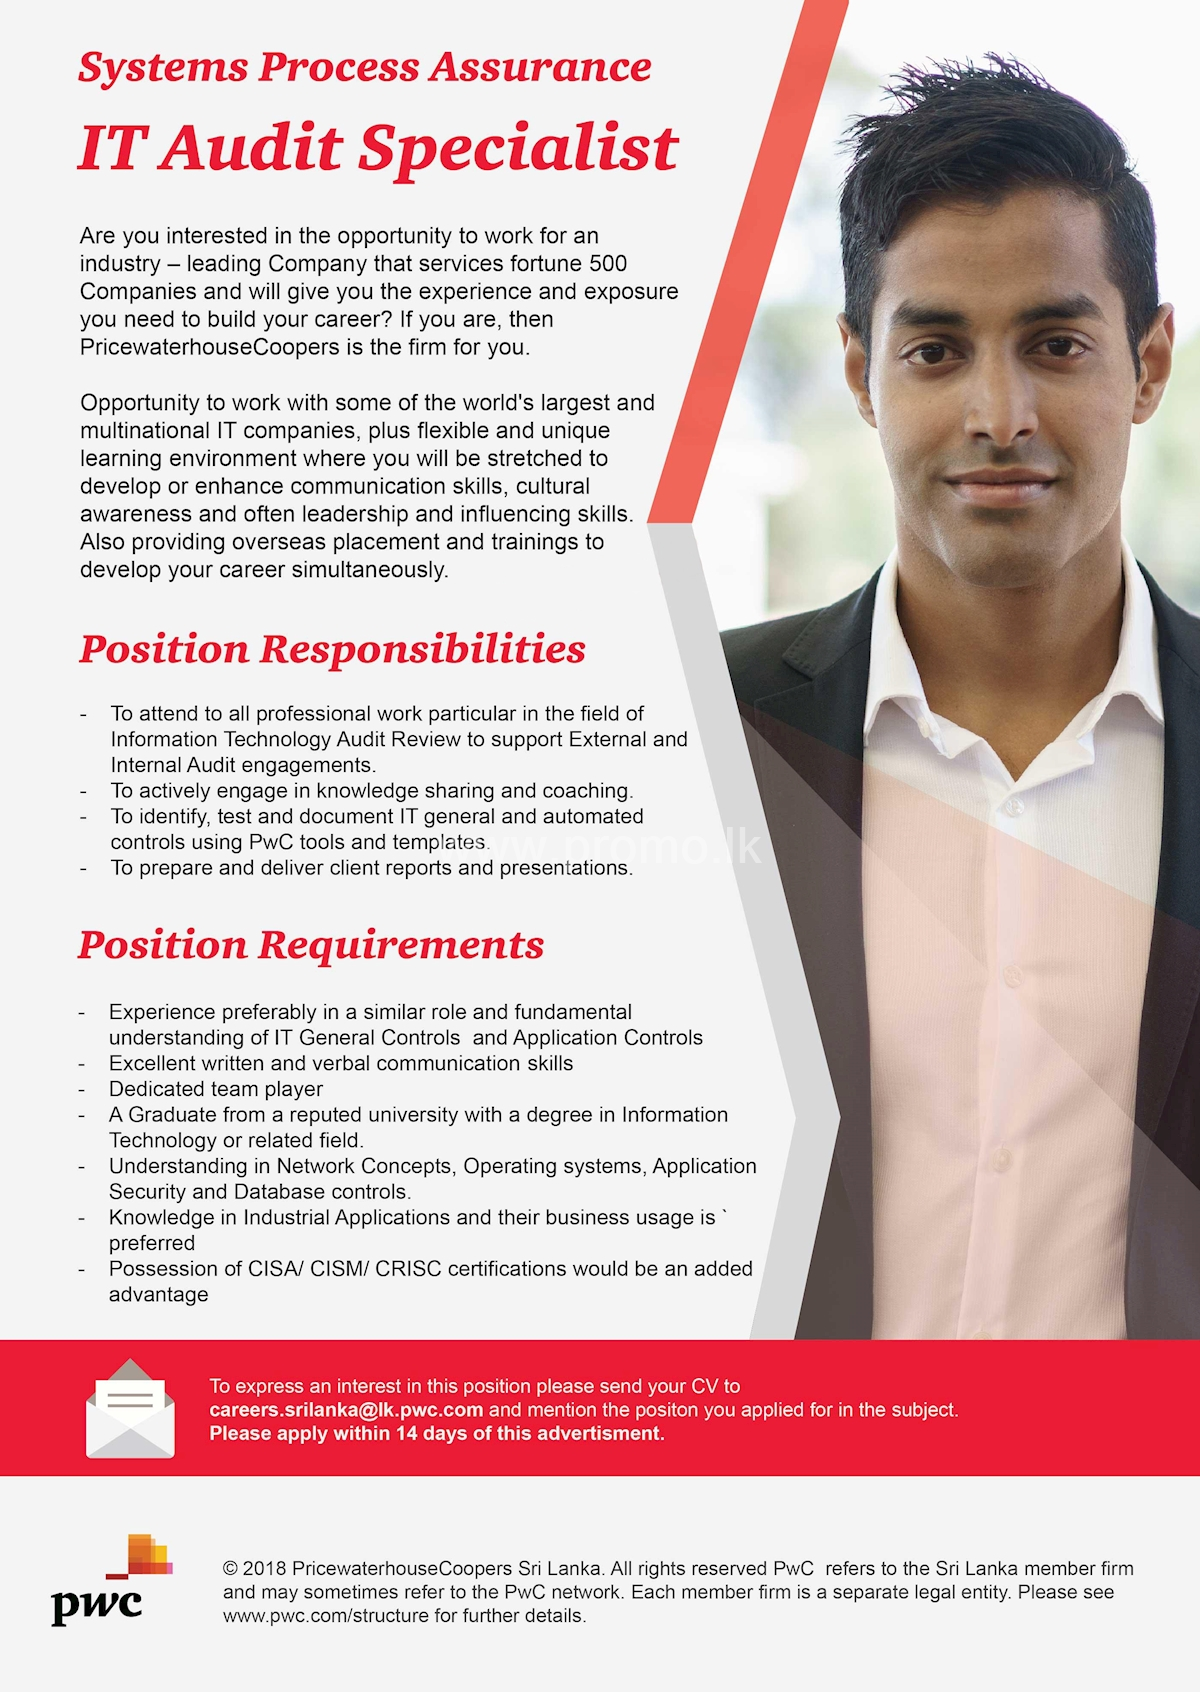 IT Audit Specialist at PWC